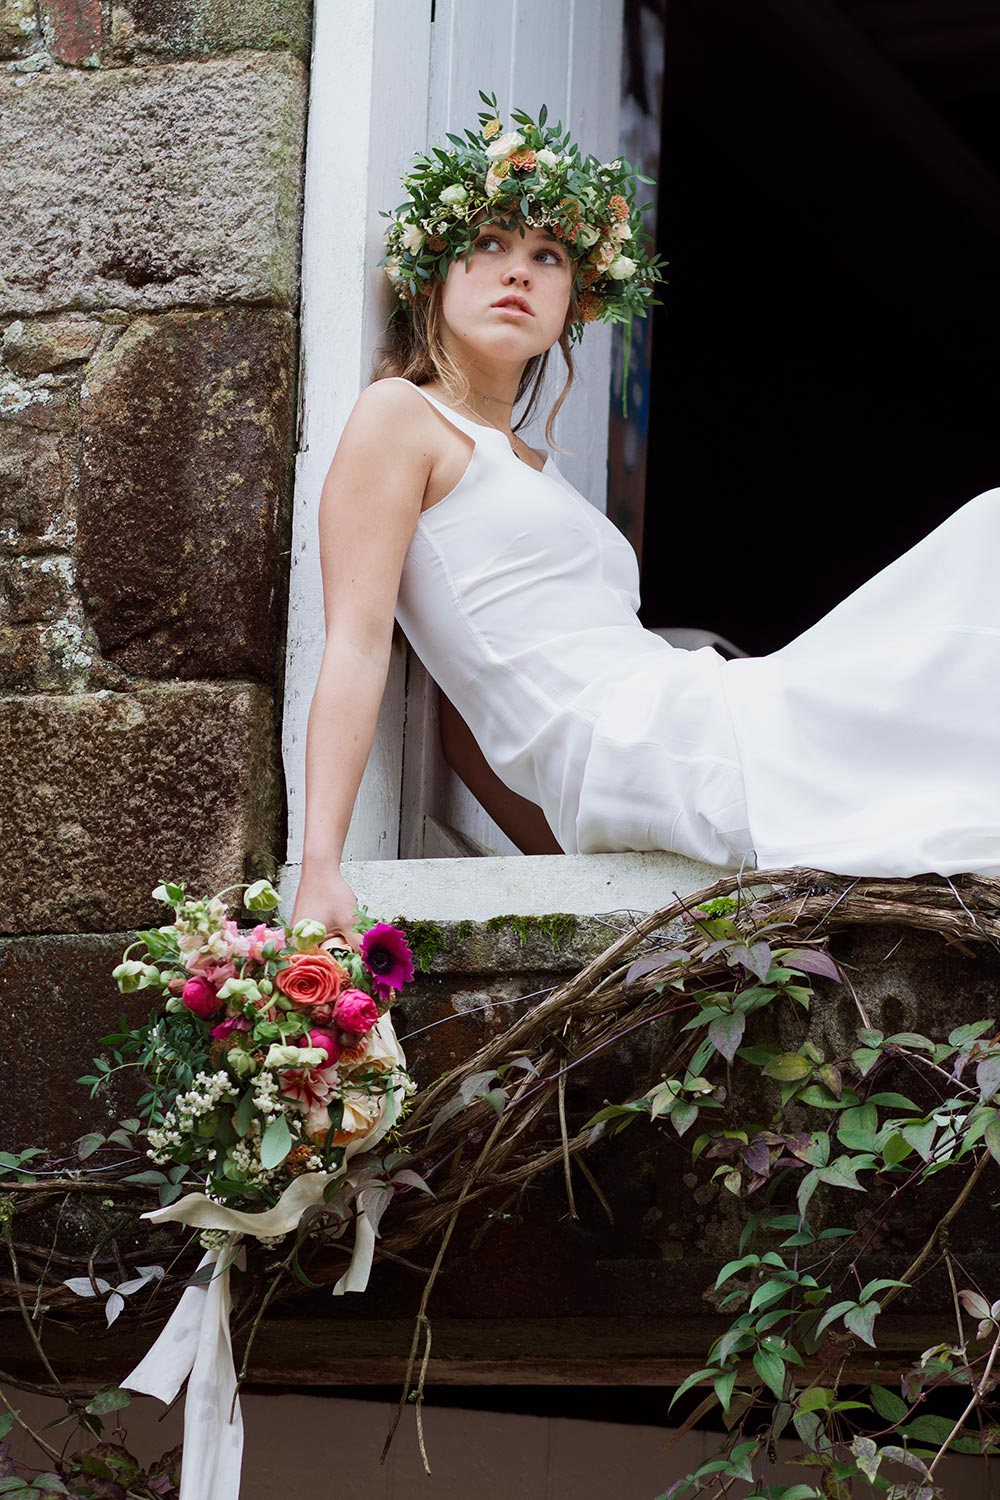 11-wilde-thyme-photoshoot-styling-bridal-flowercrown.jpg